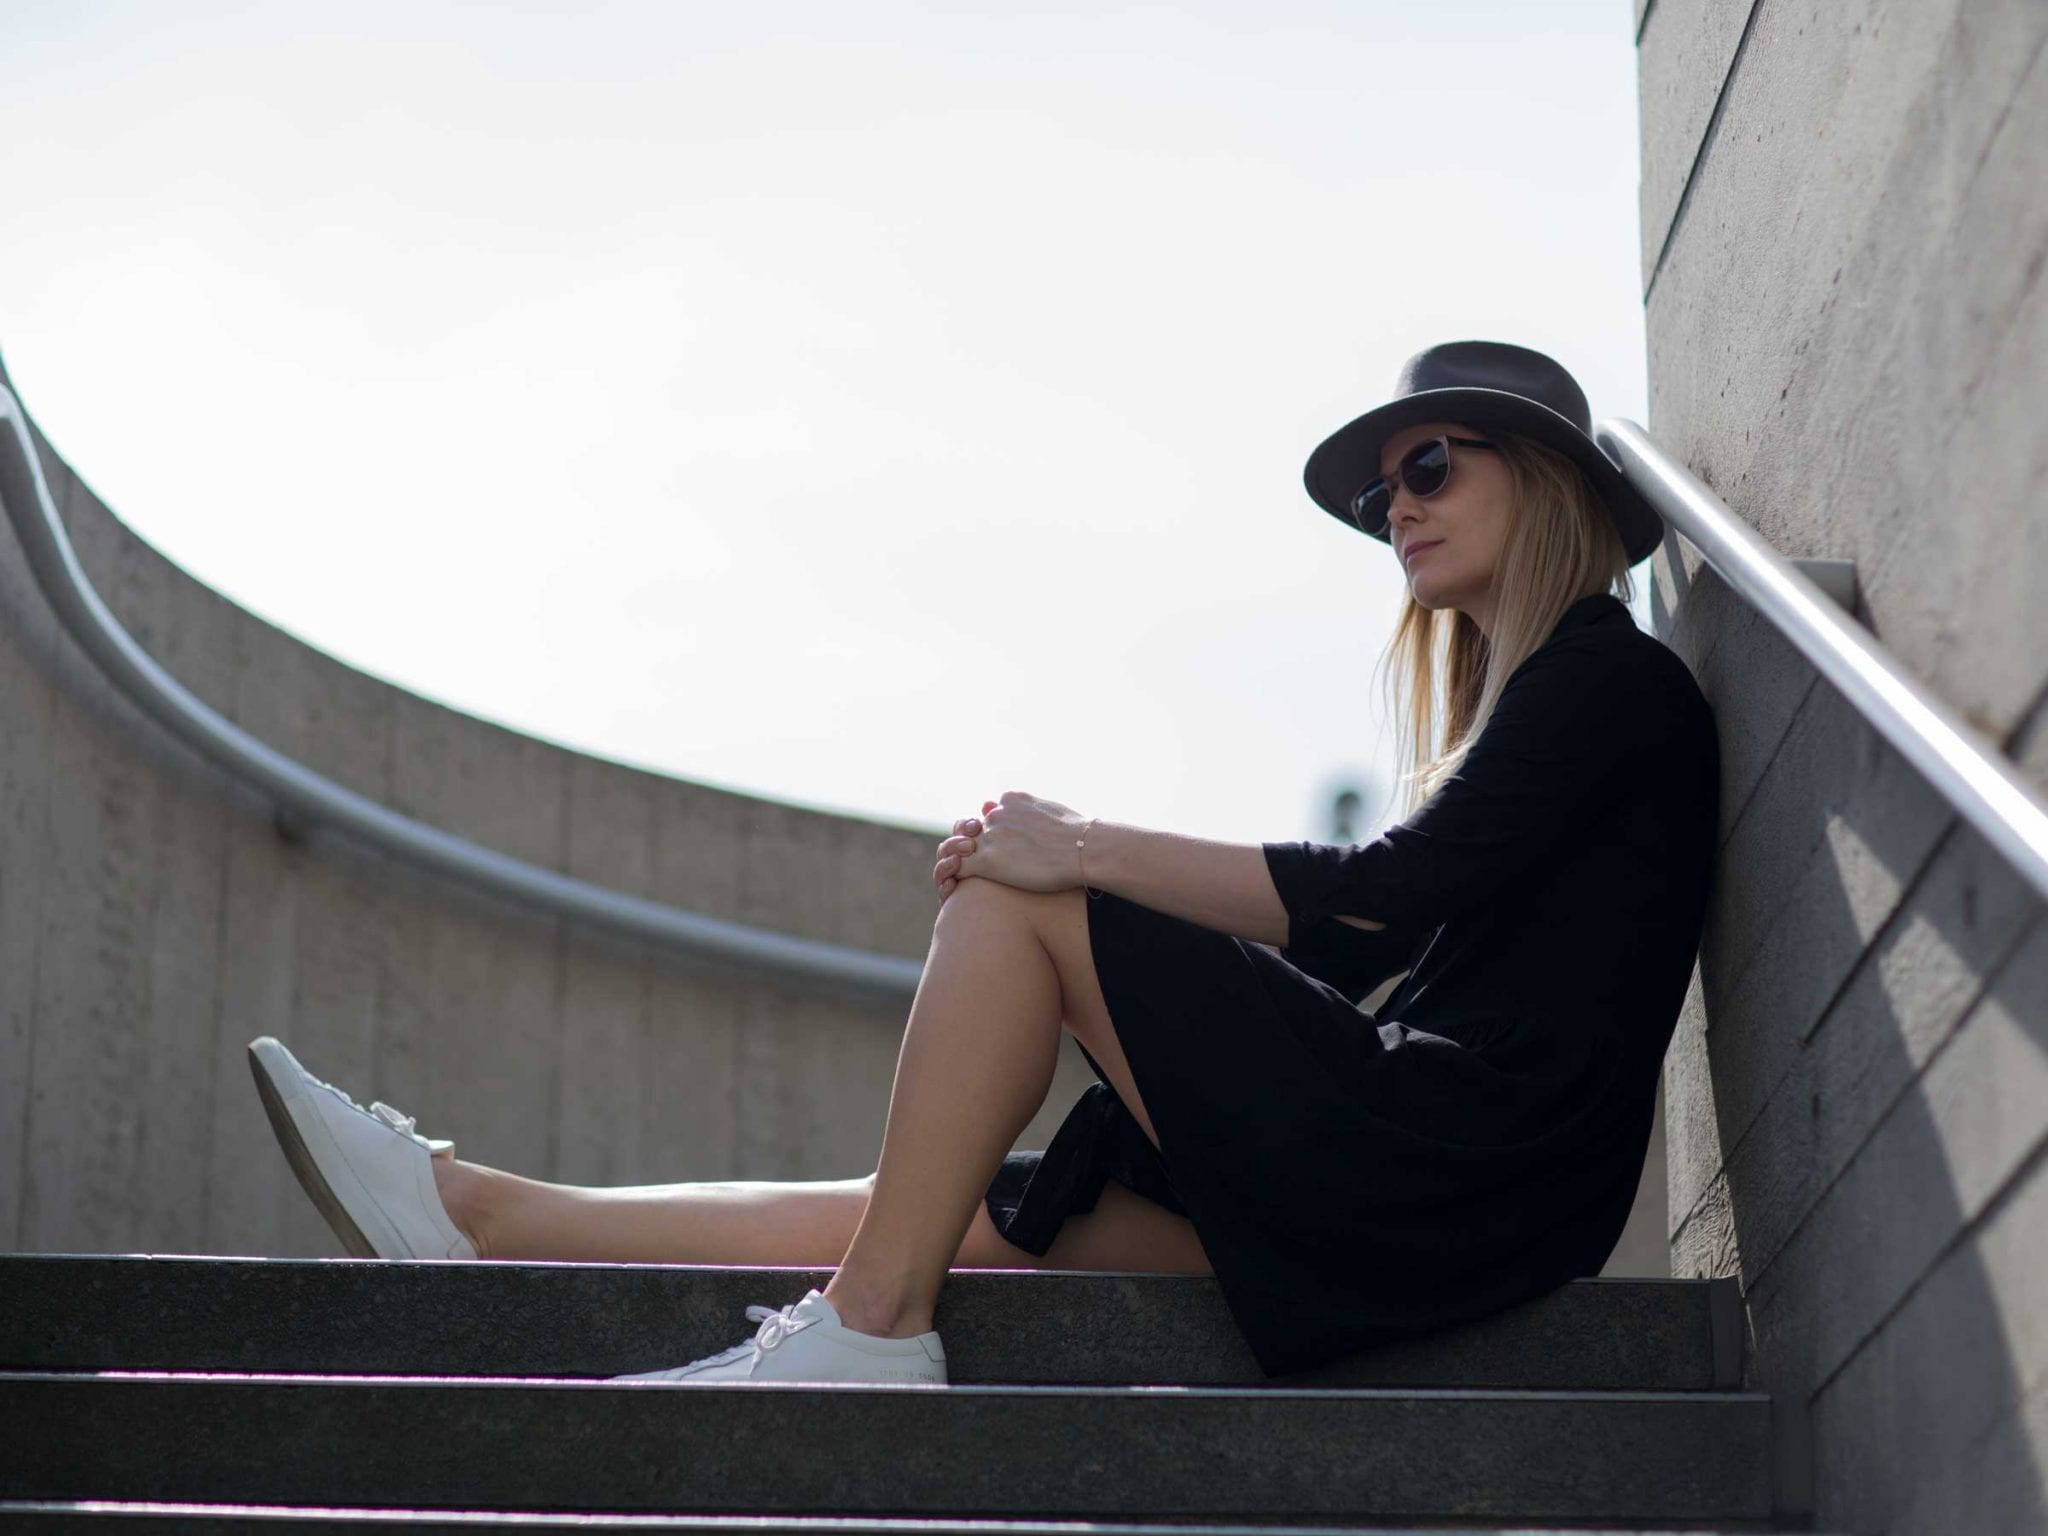 Style&Minimalism | It's Personal | Hush Black Dress, Common Projects, Straw Basket Bag